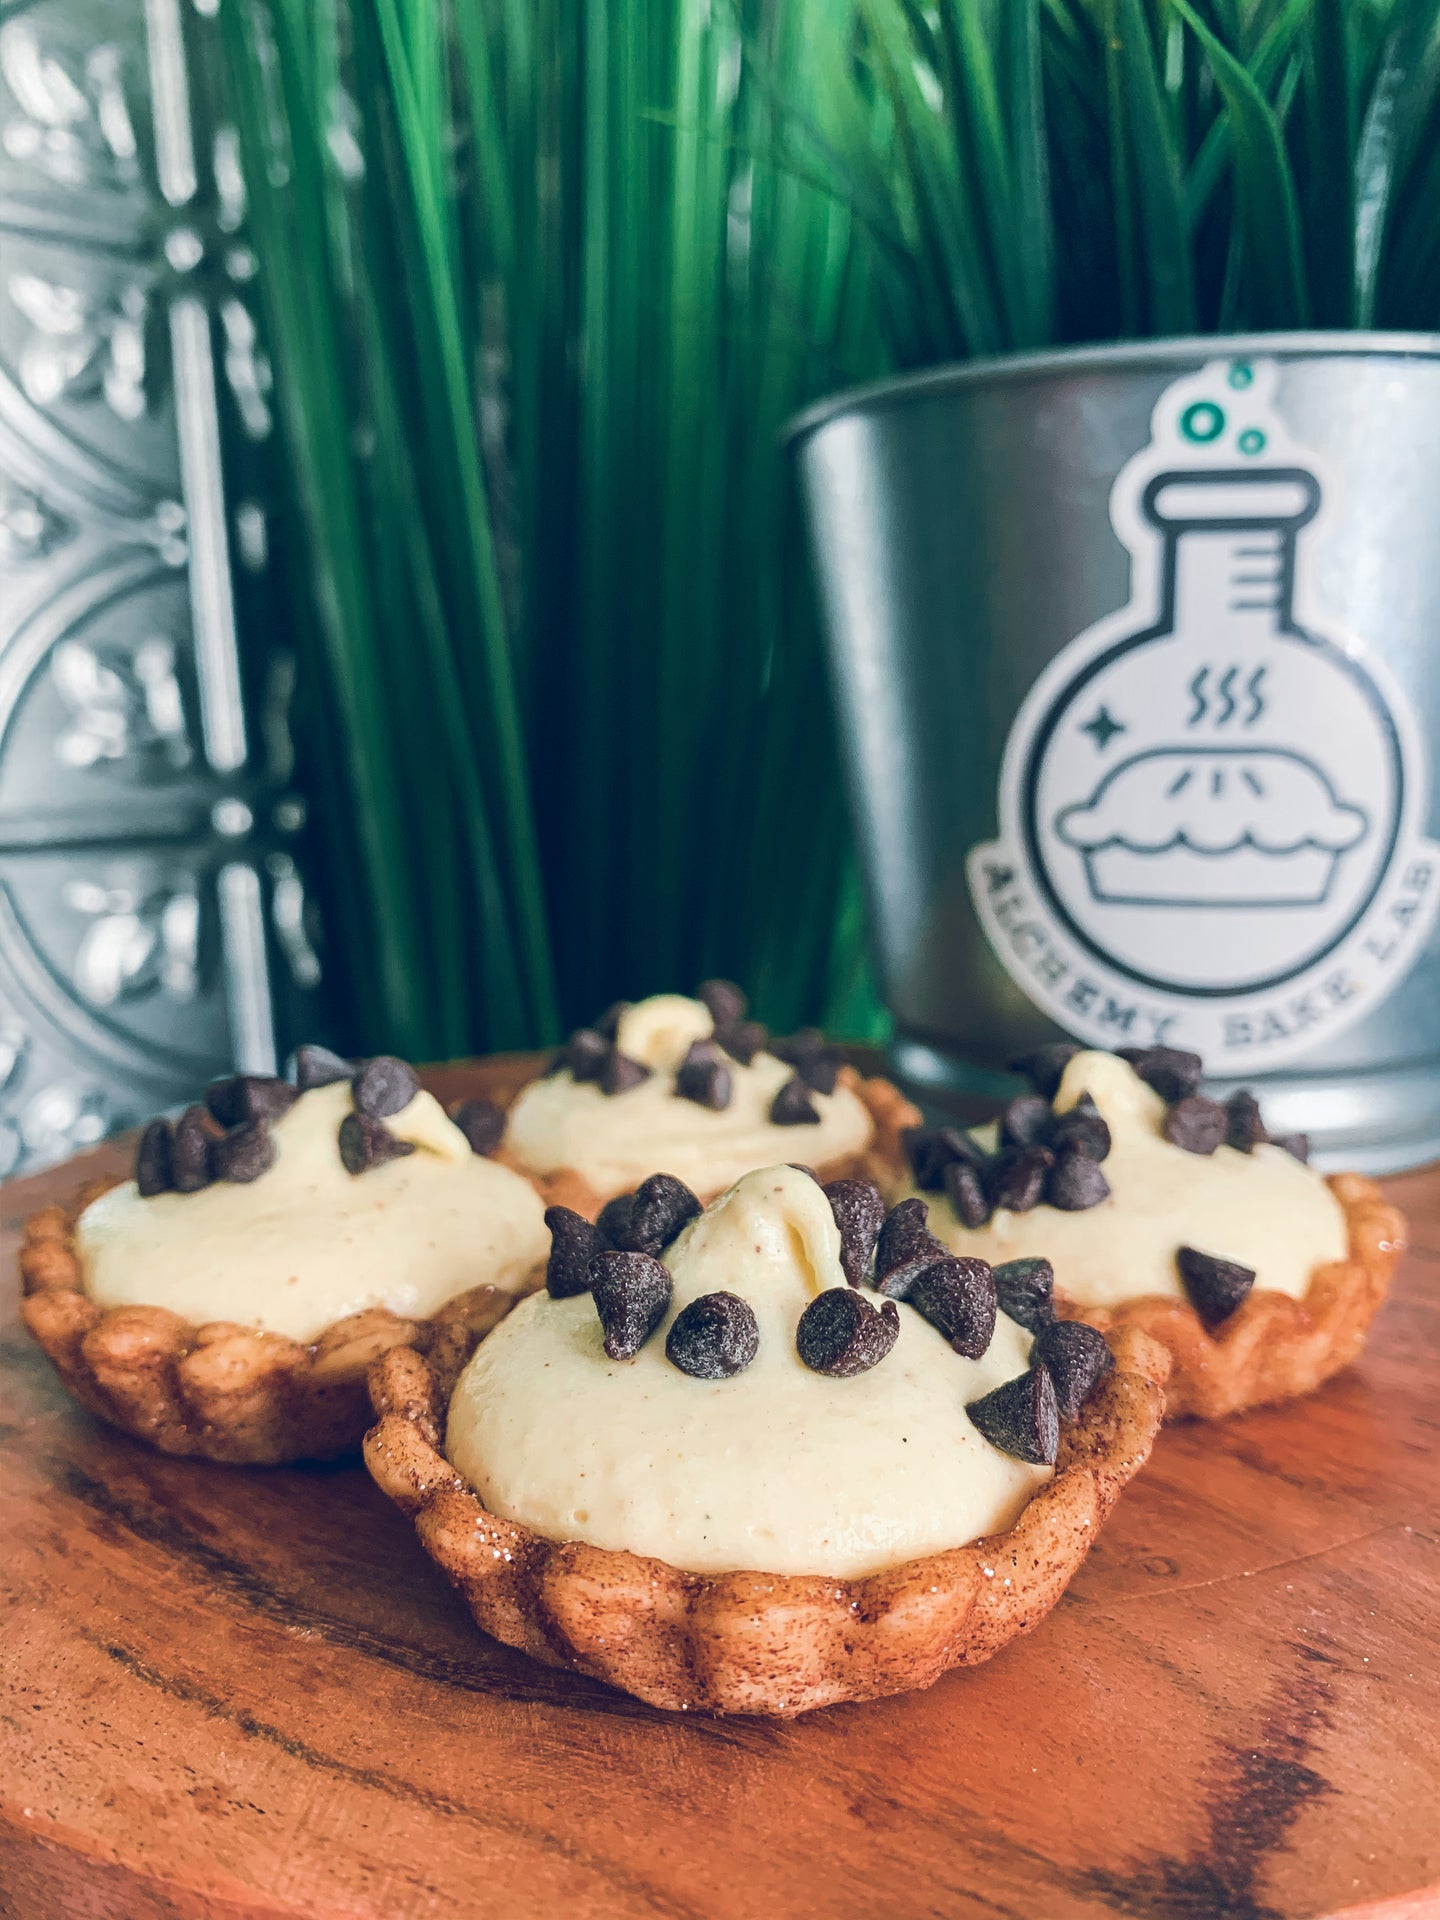 +cannoli tarts - Alchemy Bake Lab